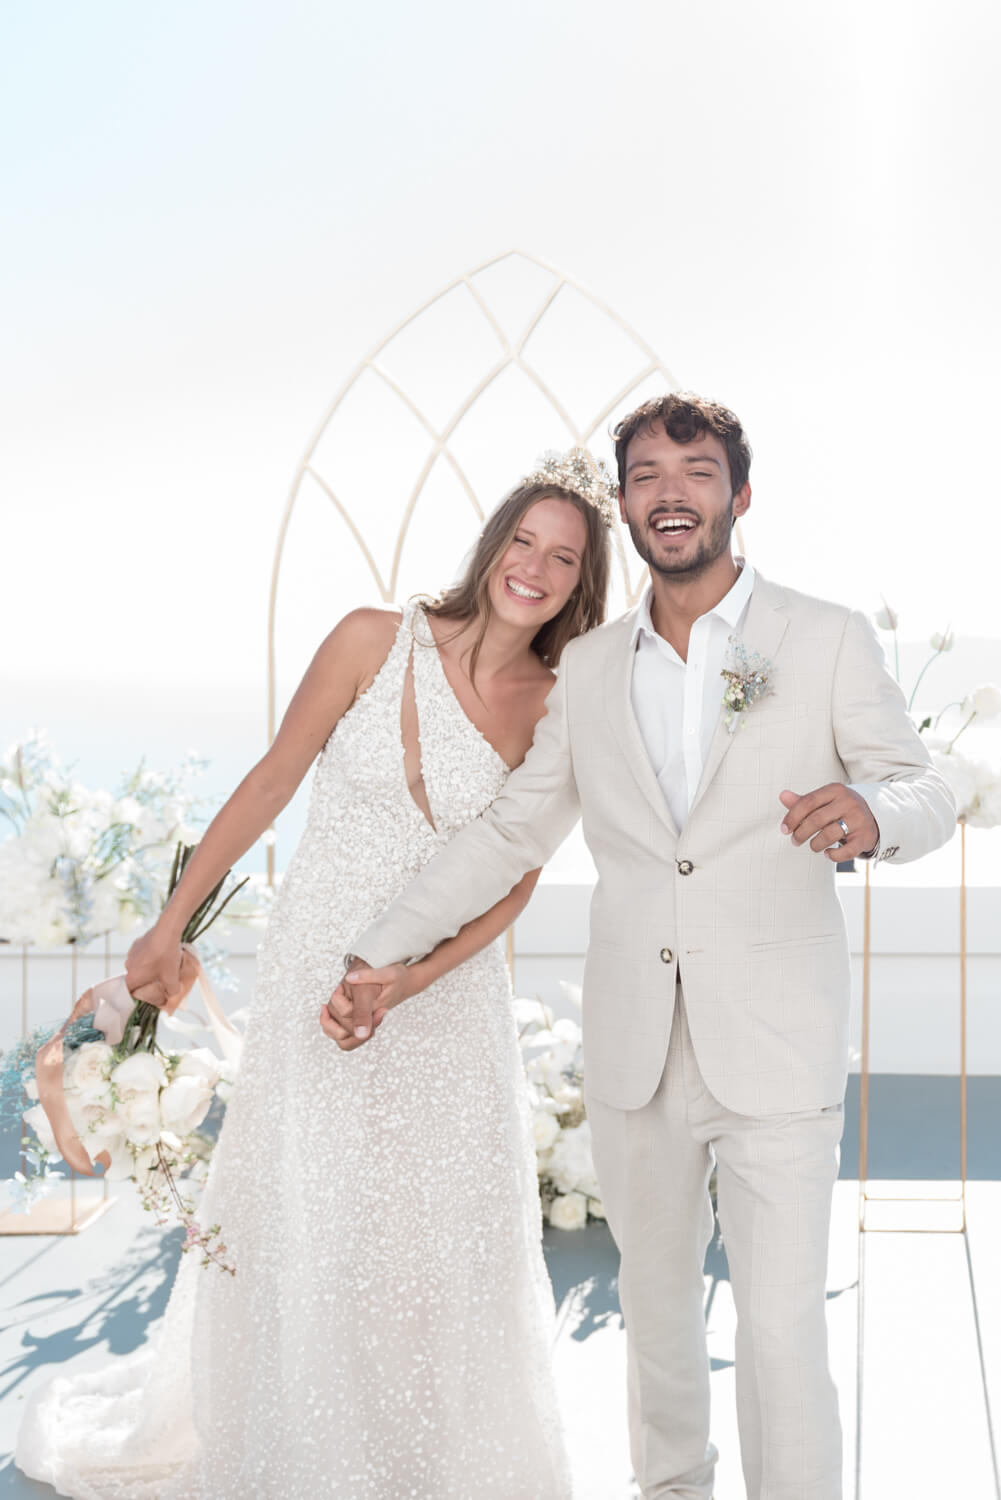 Wedding photography for intimate destination weddings in Europe